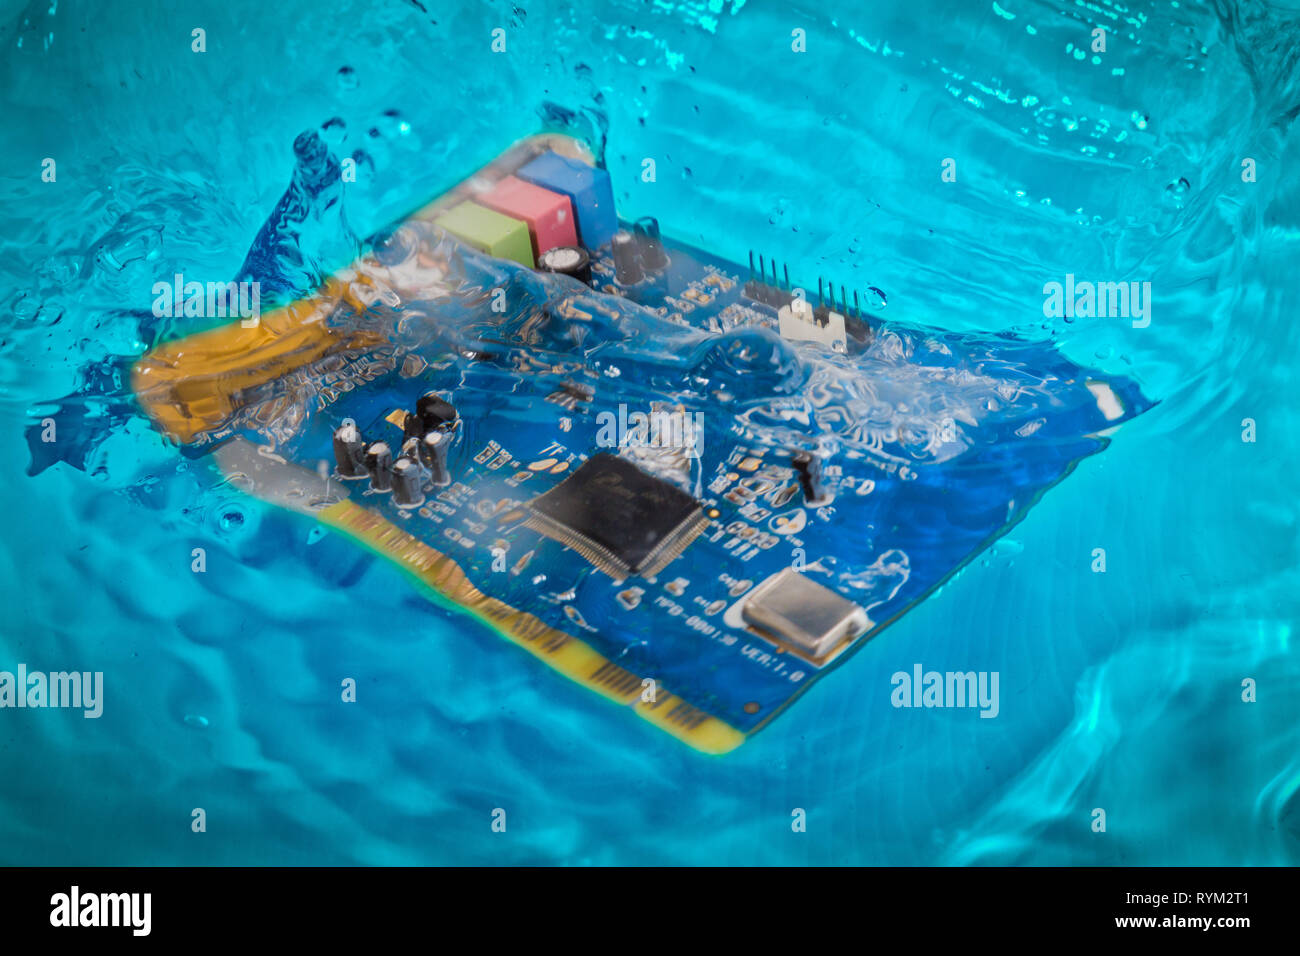 Water With Circuit Board Stock Photos & Water With Circuit